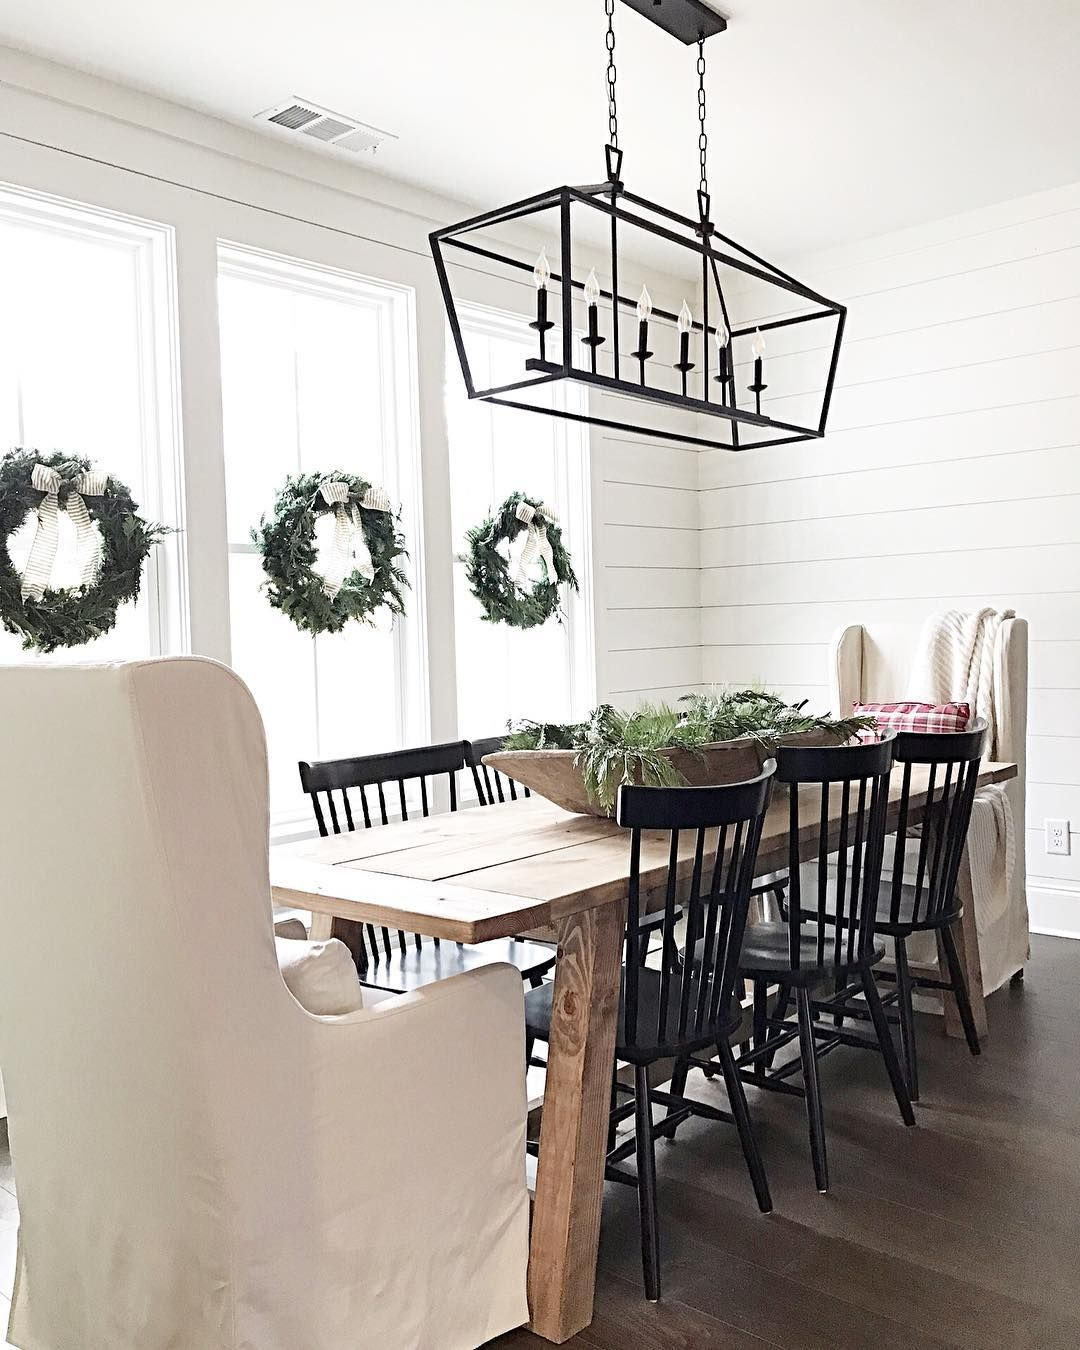 Modernfarmhouse Via Salvagedchicmarket Downlights Dining Area Bench Interior Design Hashtags